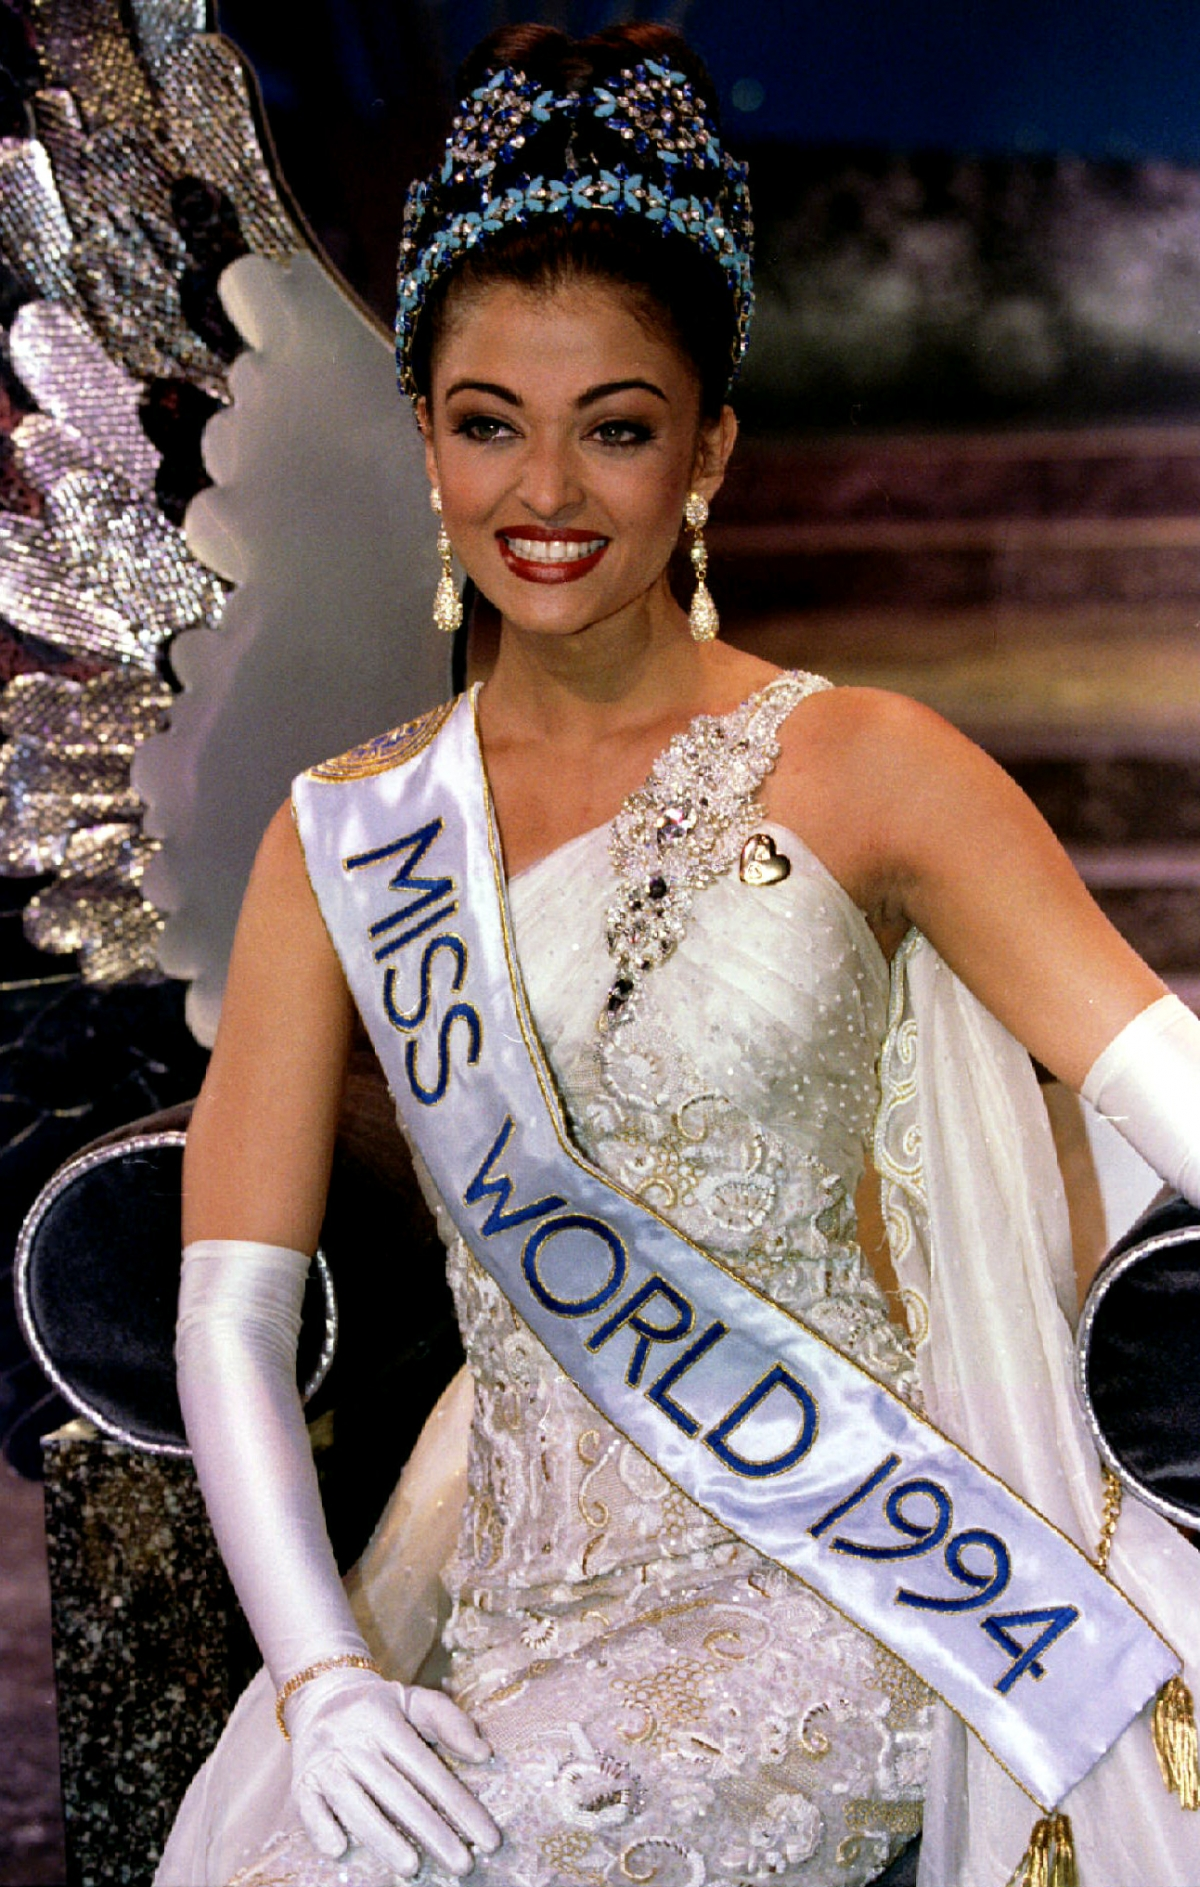 aishwarya rai, miss world 1994. Ganixwbm